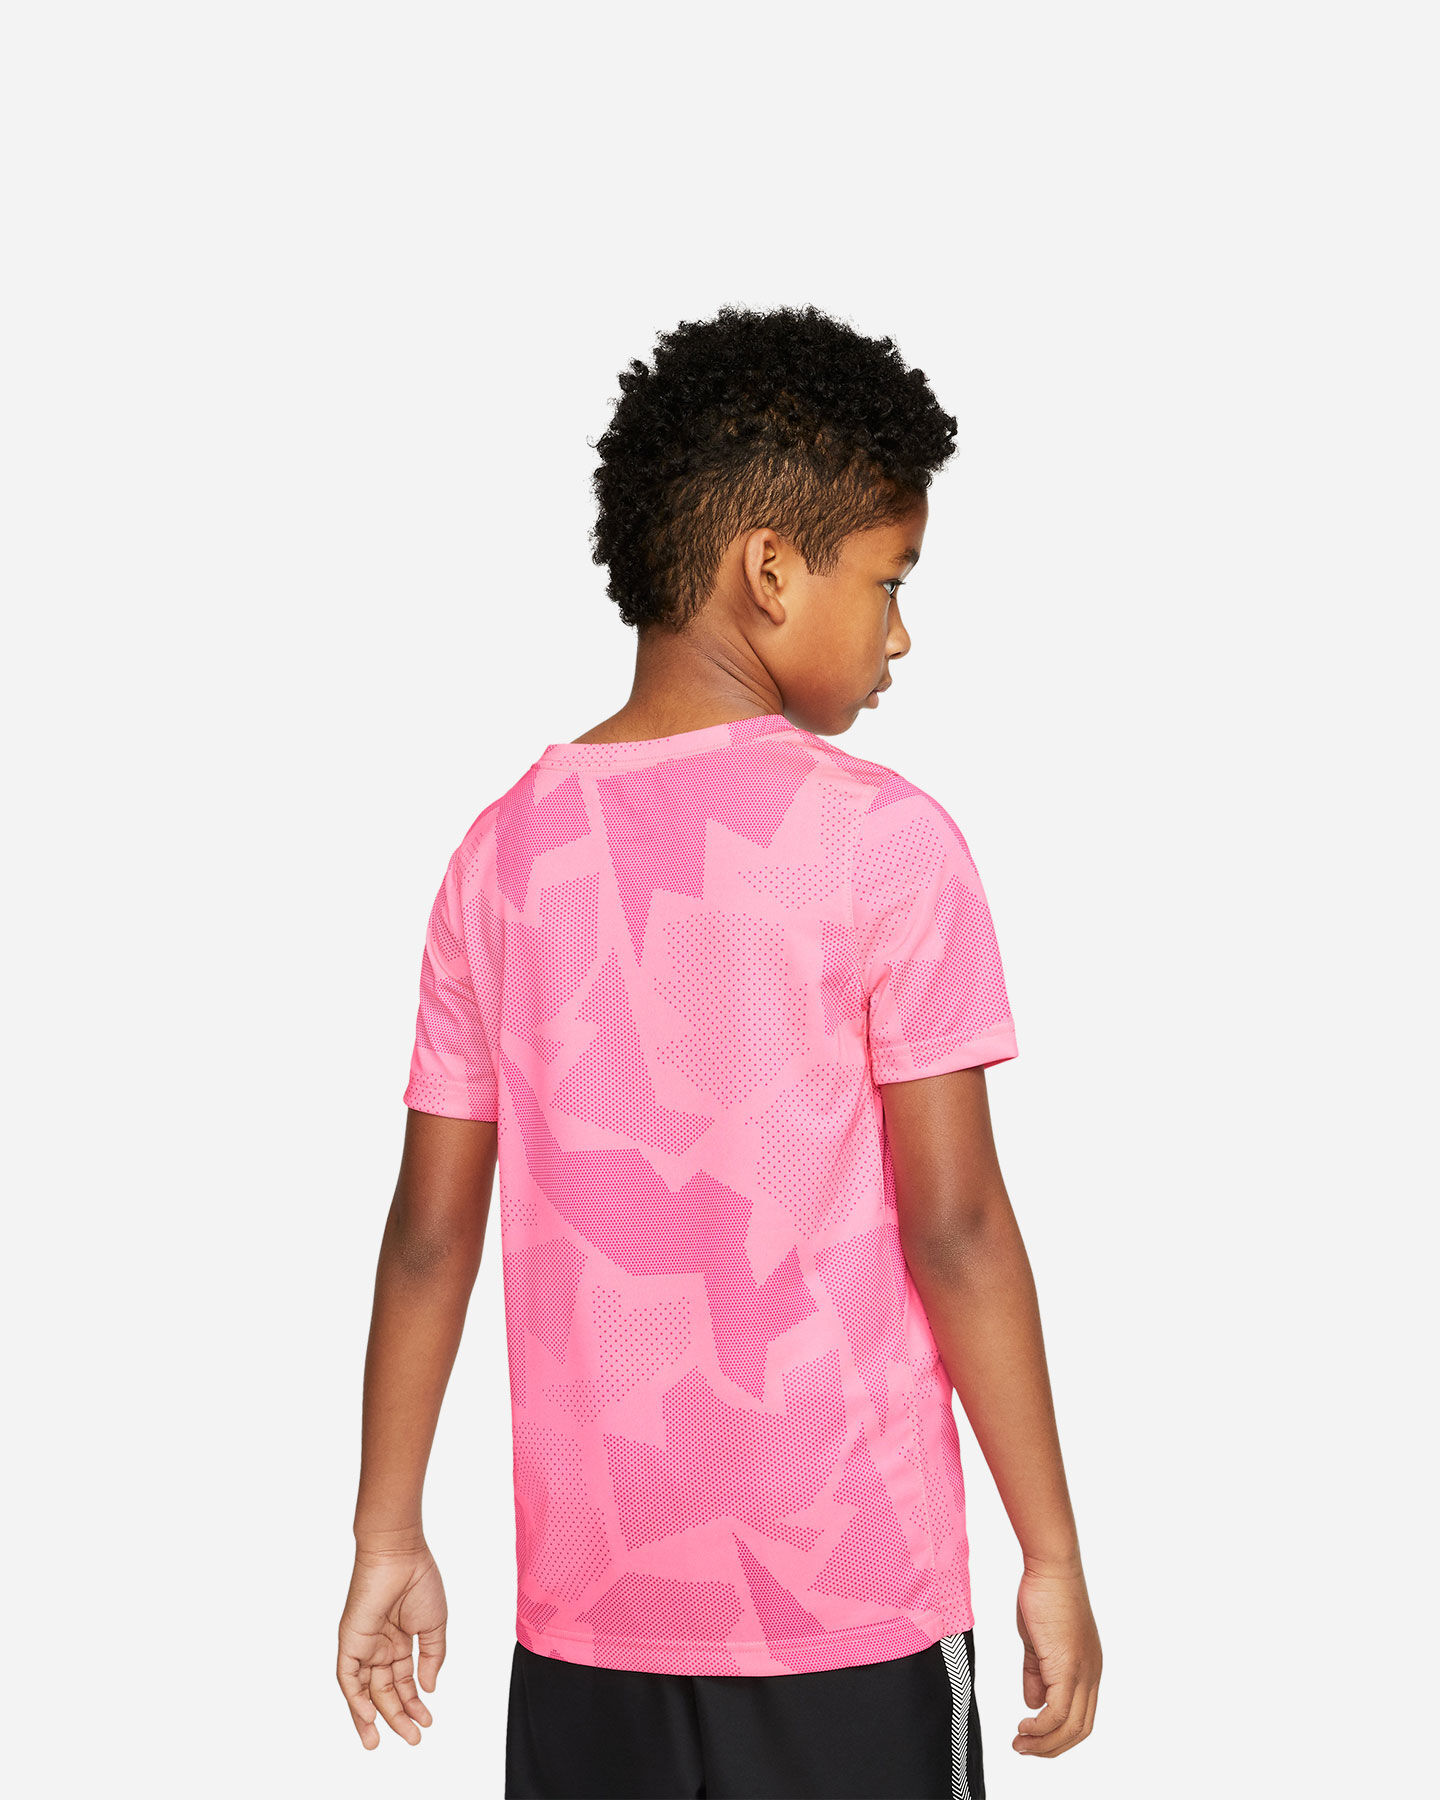 Maglia tennis NIKE COURT DRI-FIT RAFA JR S5163743 scatto 1